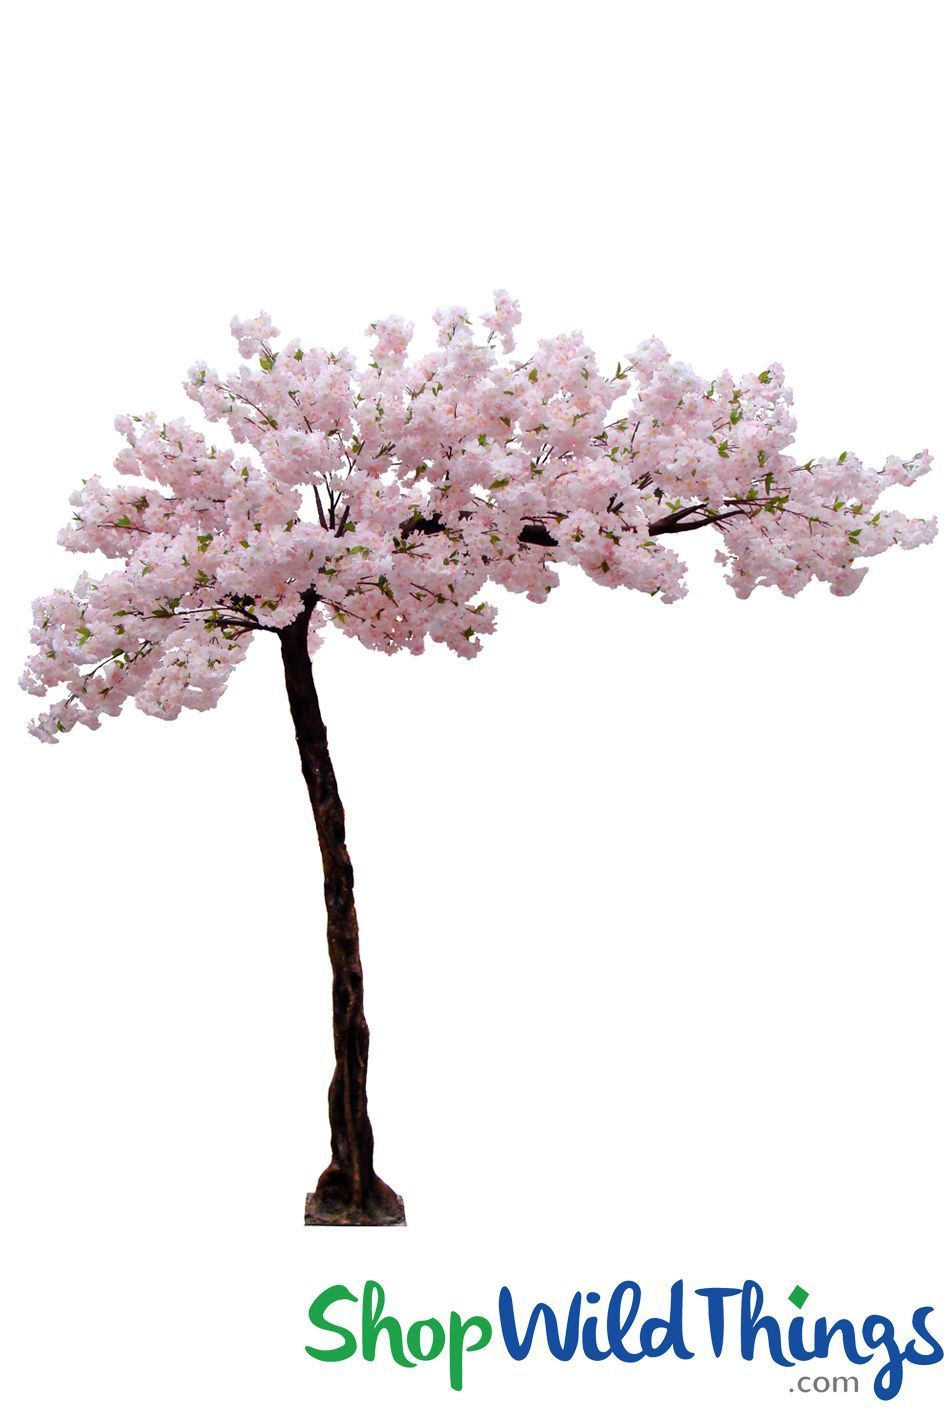 Coming Soon Flowering Cherry Blossom Multi Pink 10 5 Feet Tall X 8 Feet Wide Sideswept Create Arch Using 2 Flowering Trees Pink Flowering Trees Pink Dogwood